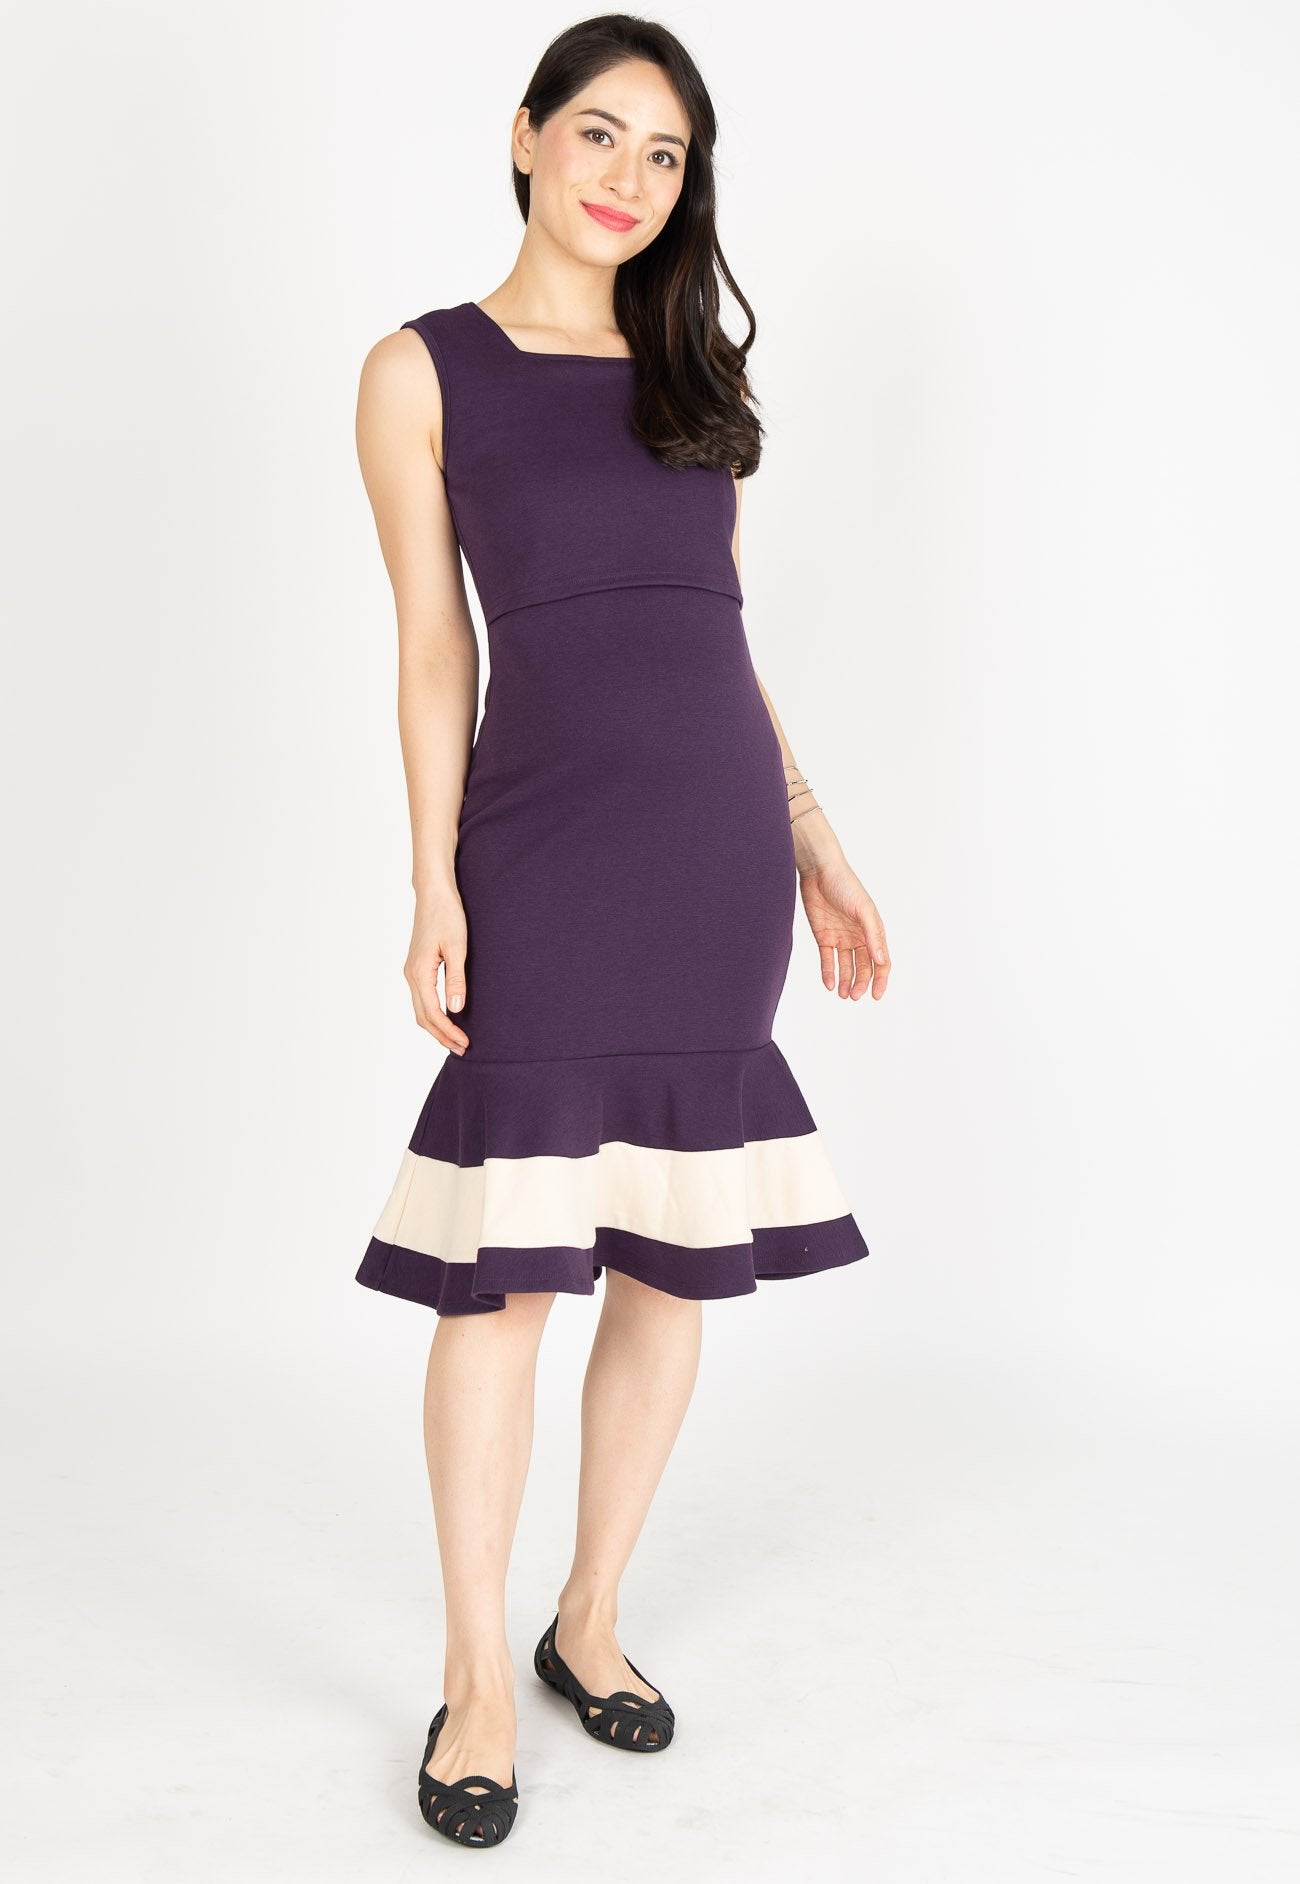 Vesper Mermaid Nursing Dress in Purple Nursing Wear Mothercot